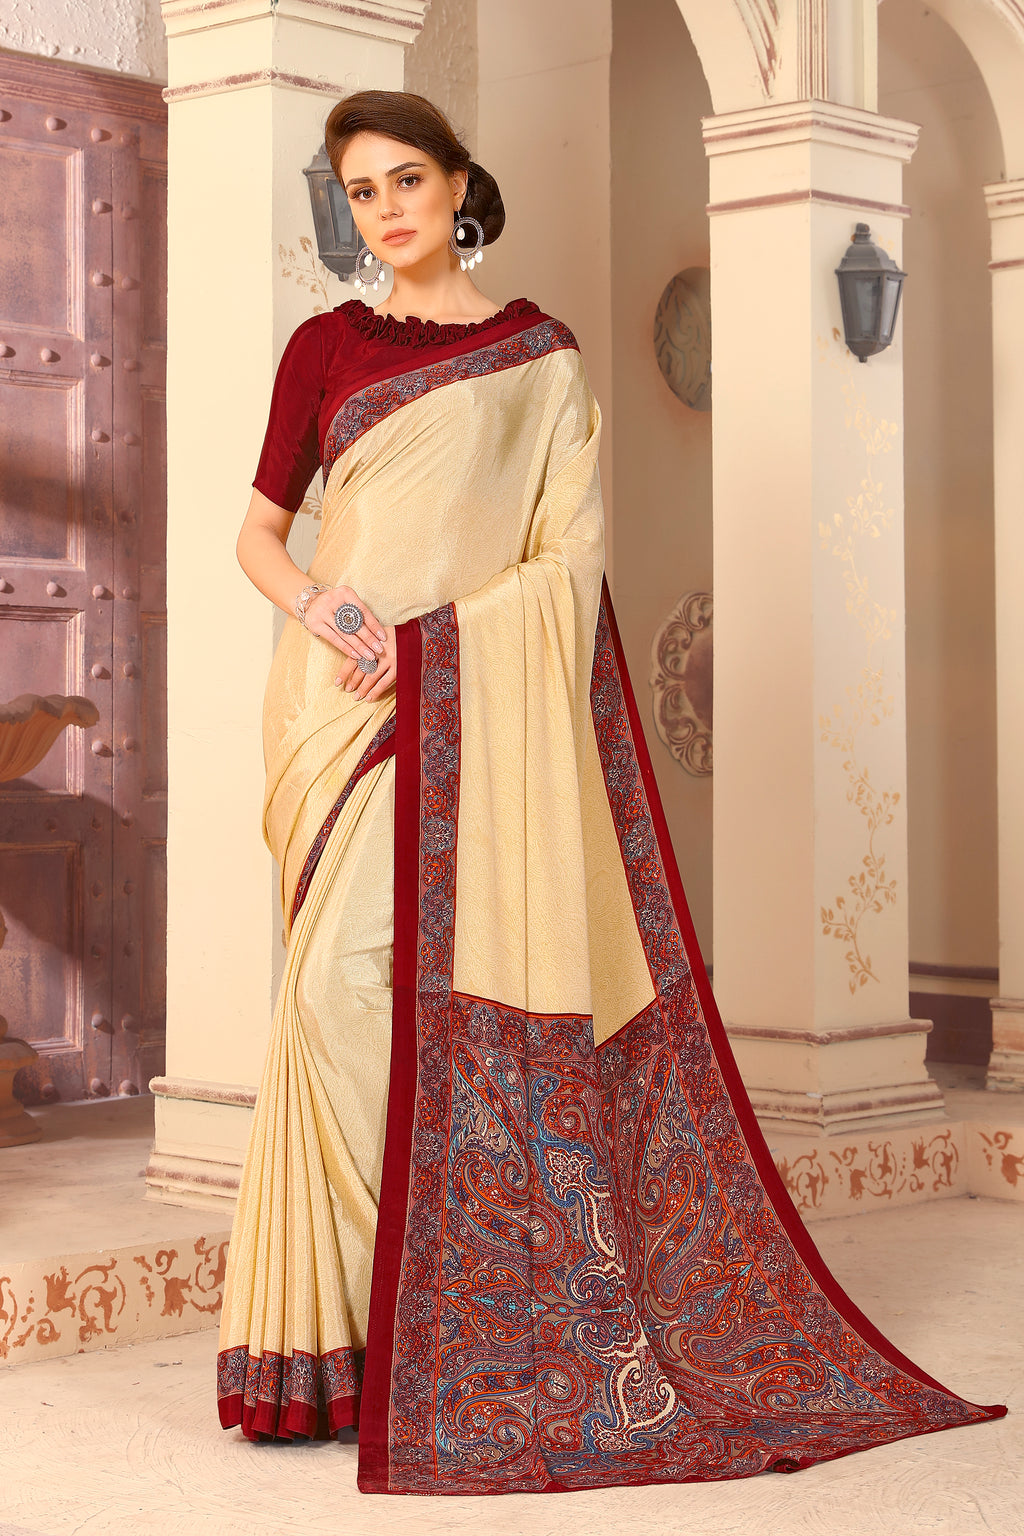 Cream & Maroon Color Crepe  Kitty Party Sarees NYF-8049